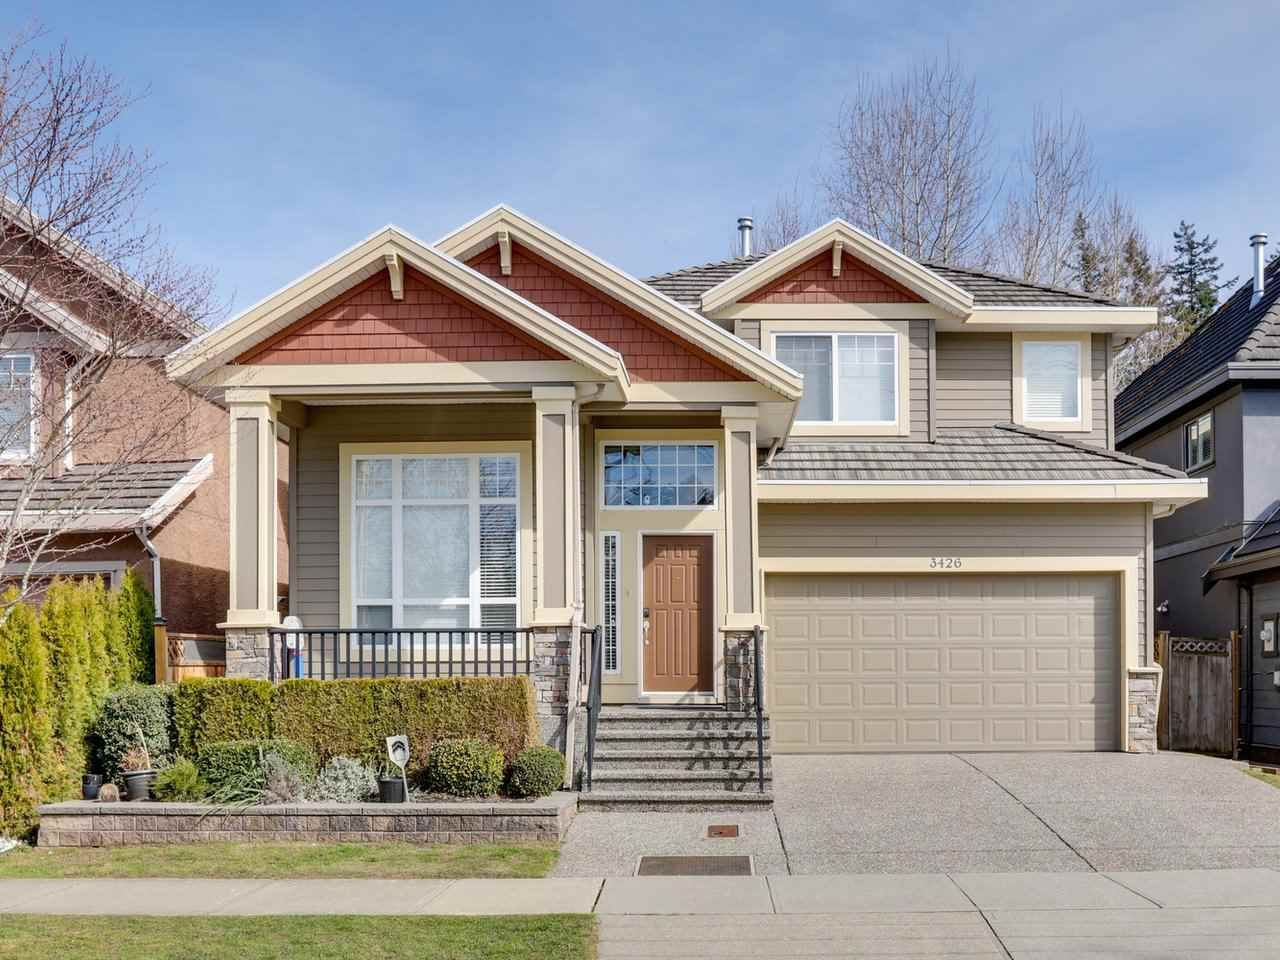 """Main Photo: 3426 150 Street in Surrey: Morgan Creek House for sale in """"Rosemary Heights West"""" (South Surrey White Rock)  : MLS®# R2572255"""